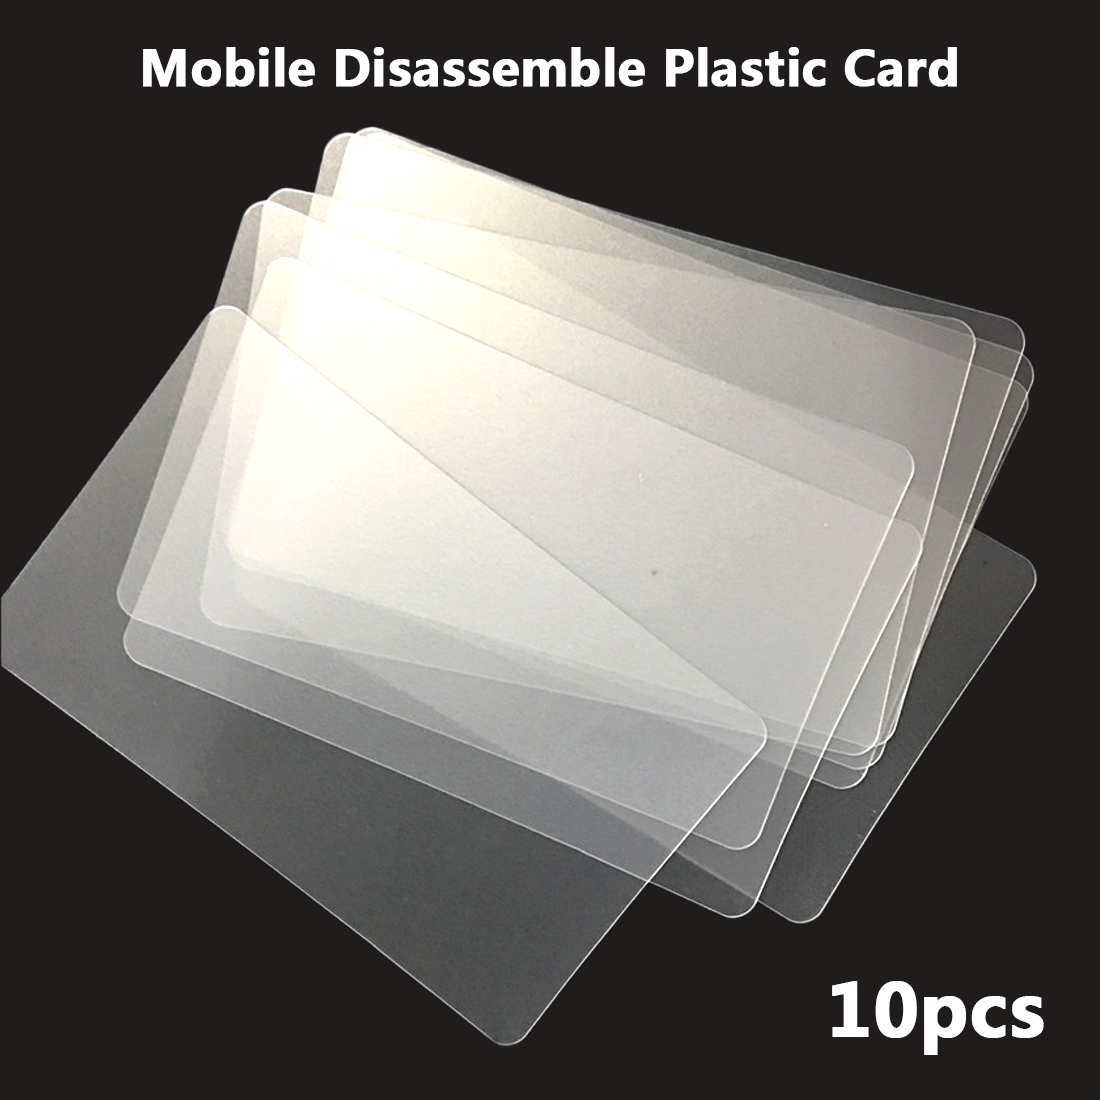 Repair Tool 10pcs Handy Plastic Card Pry Opening Scraper For IPhone IPad Tablet For Samsung Mobile Phone Glued Screen Hand Tools